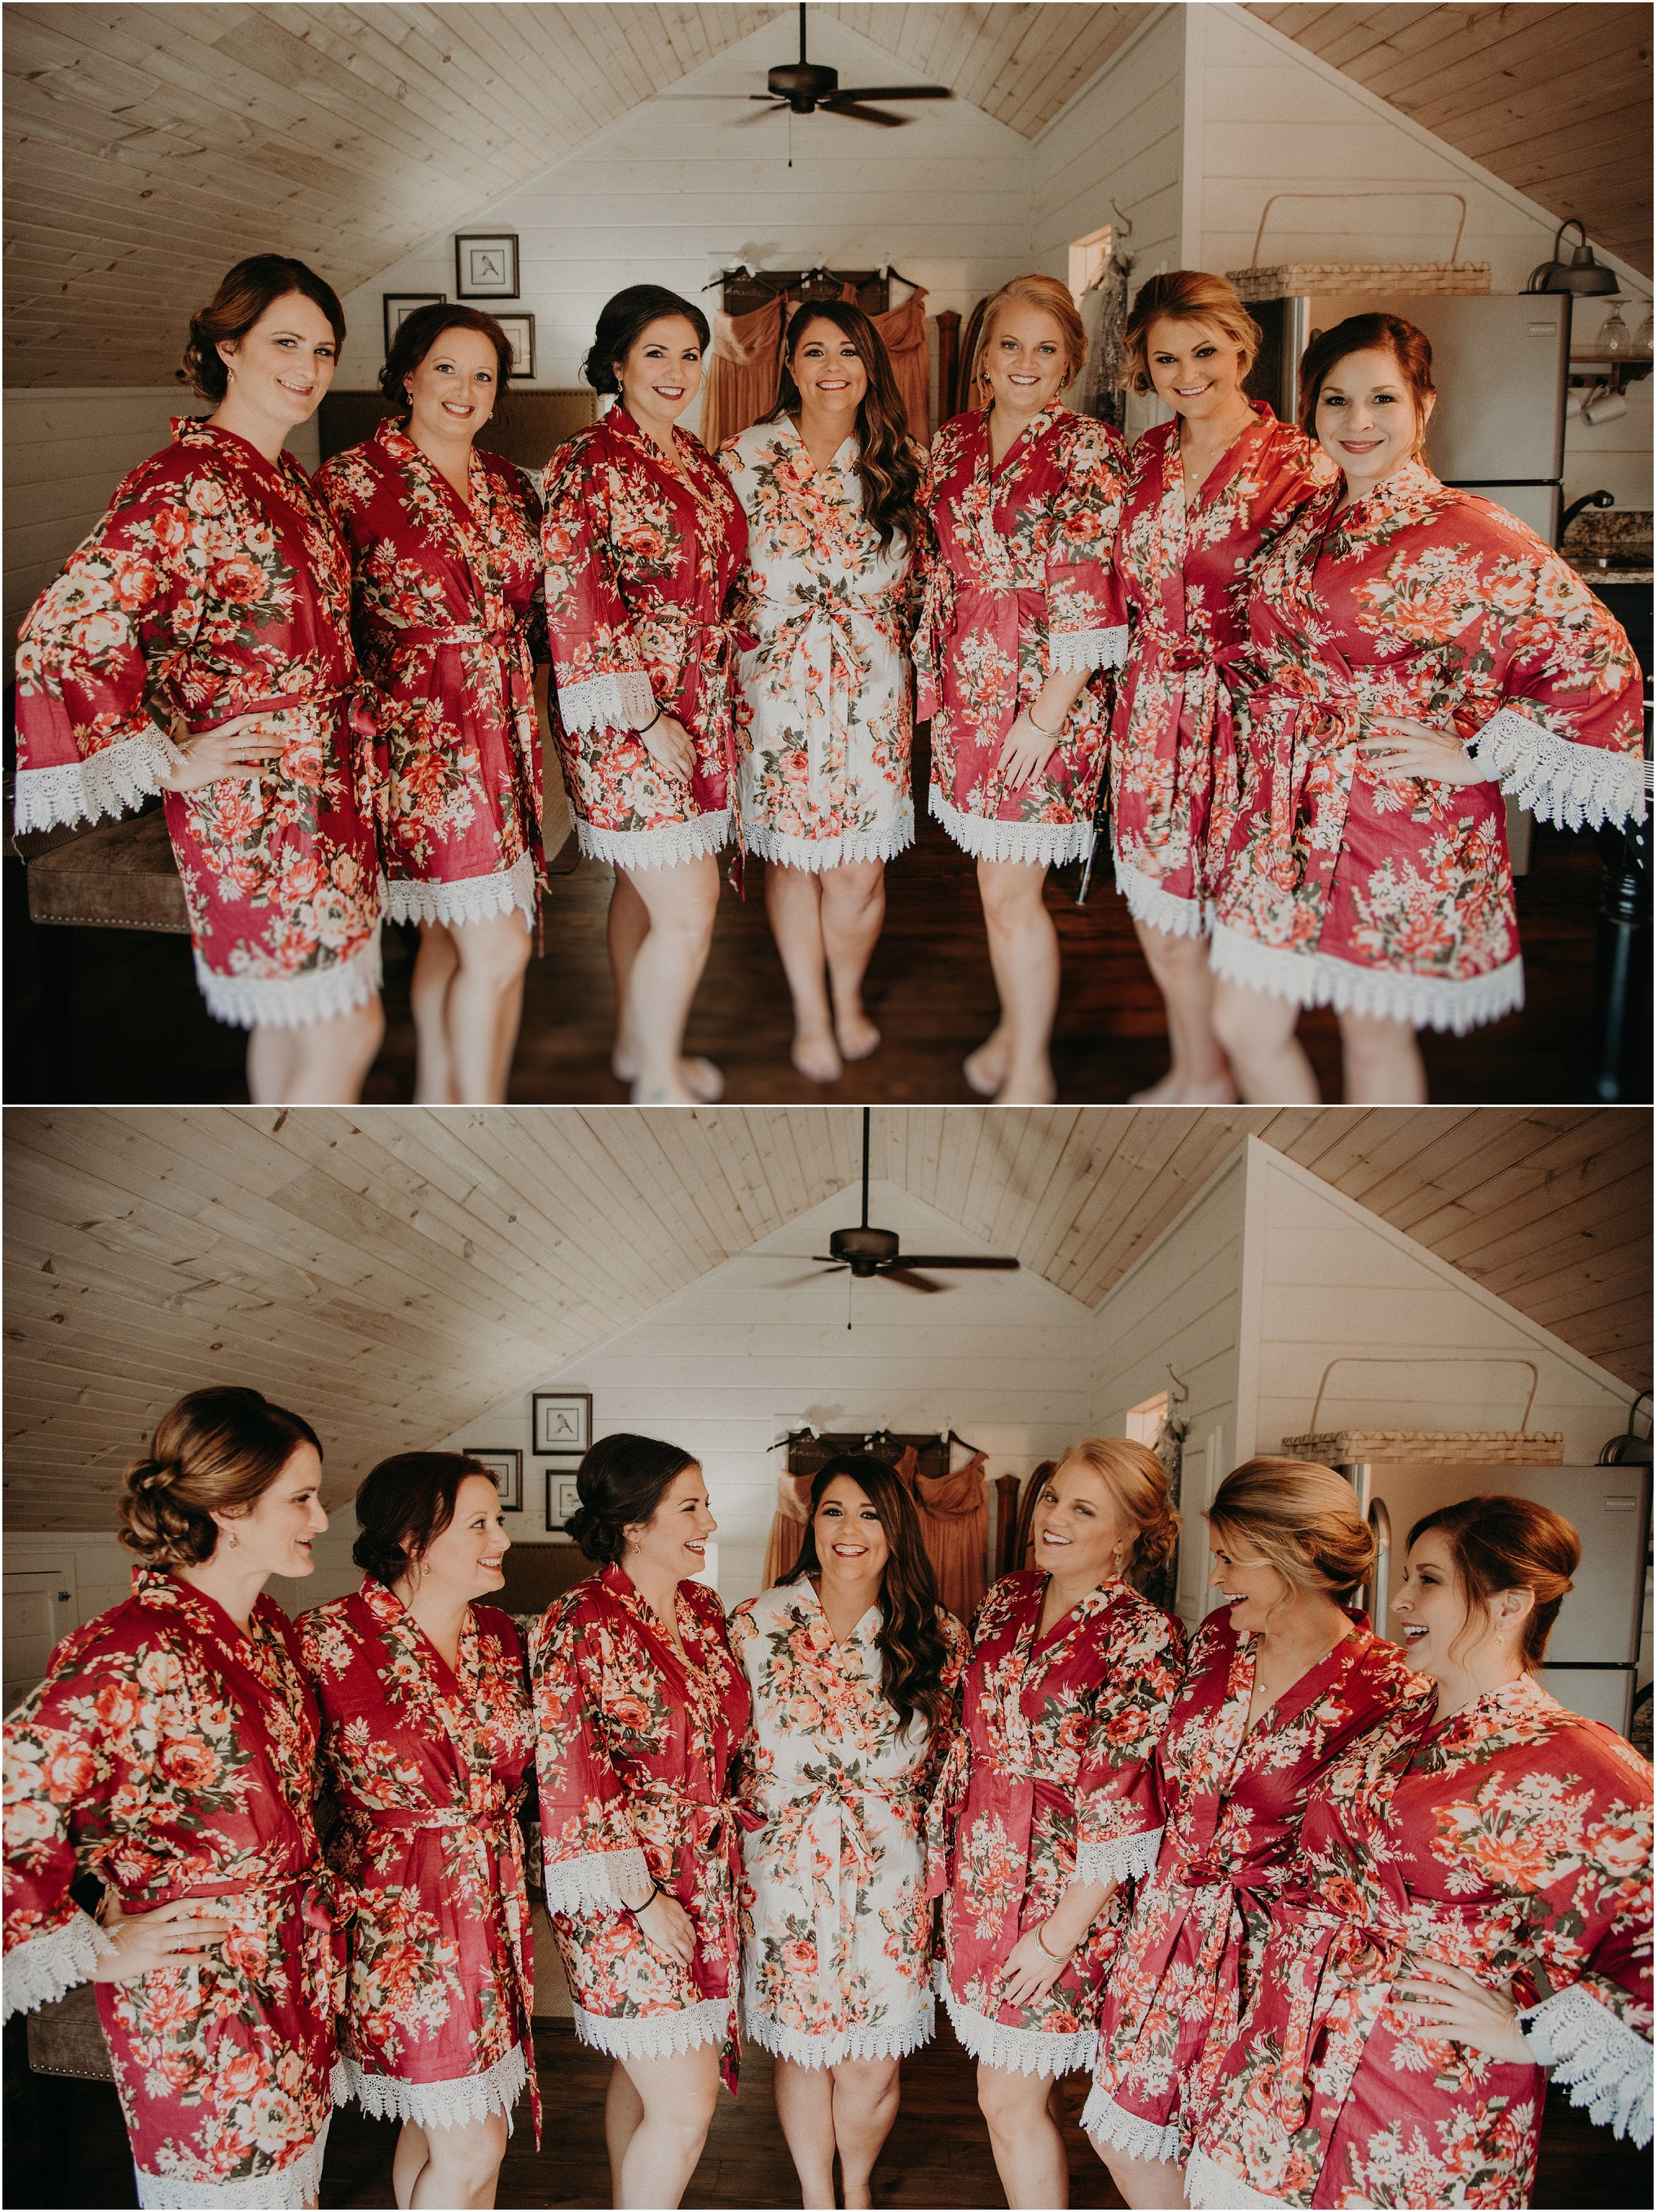 Bride and bridesmaids in matching robes laughing together